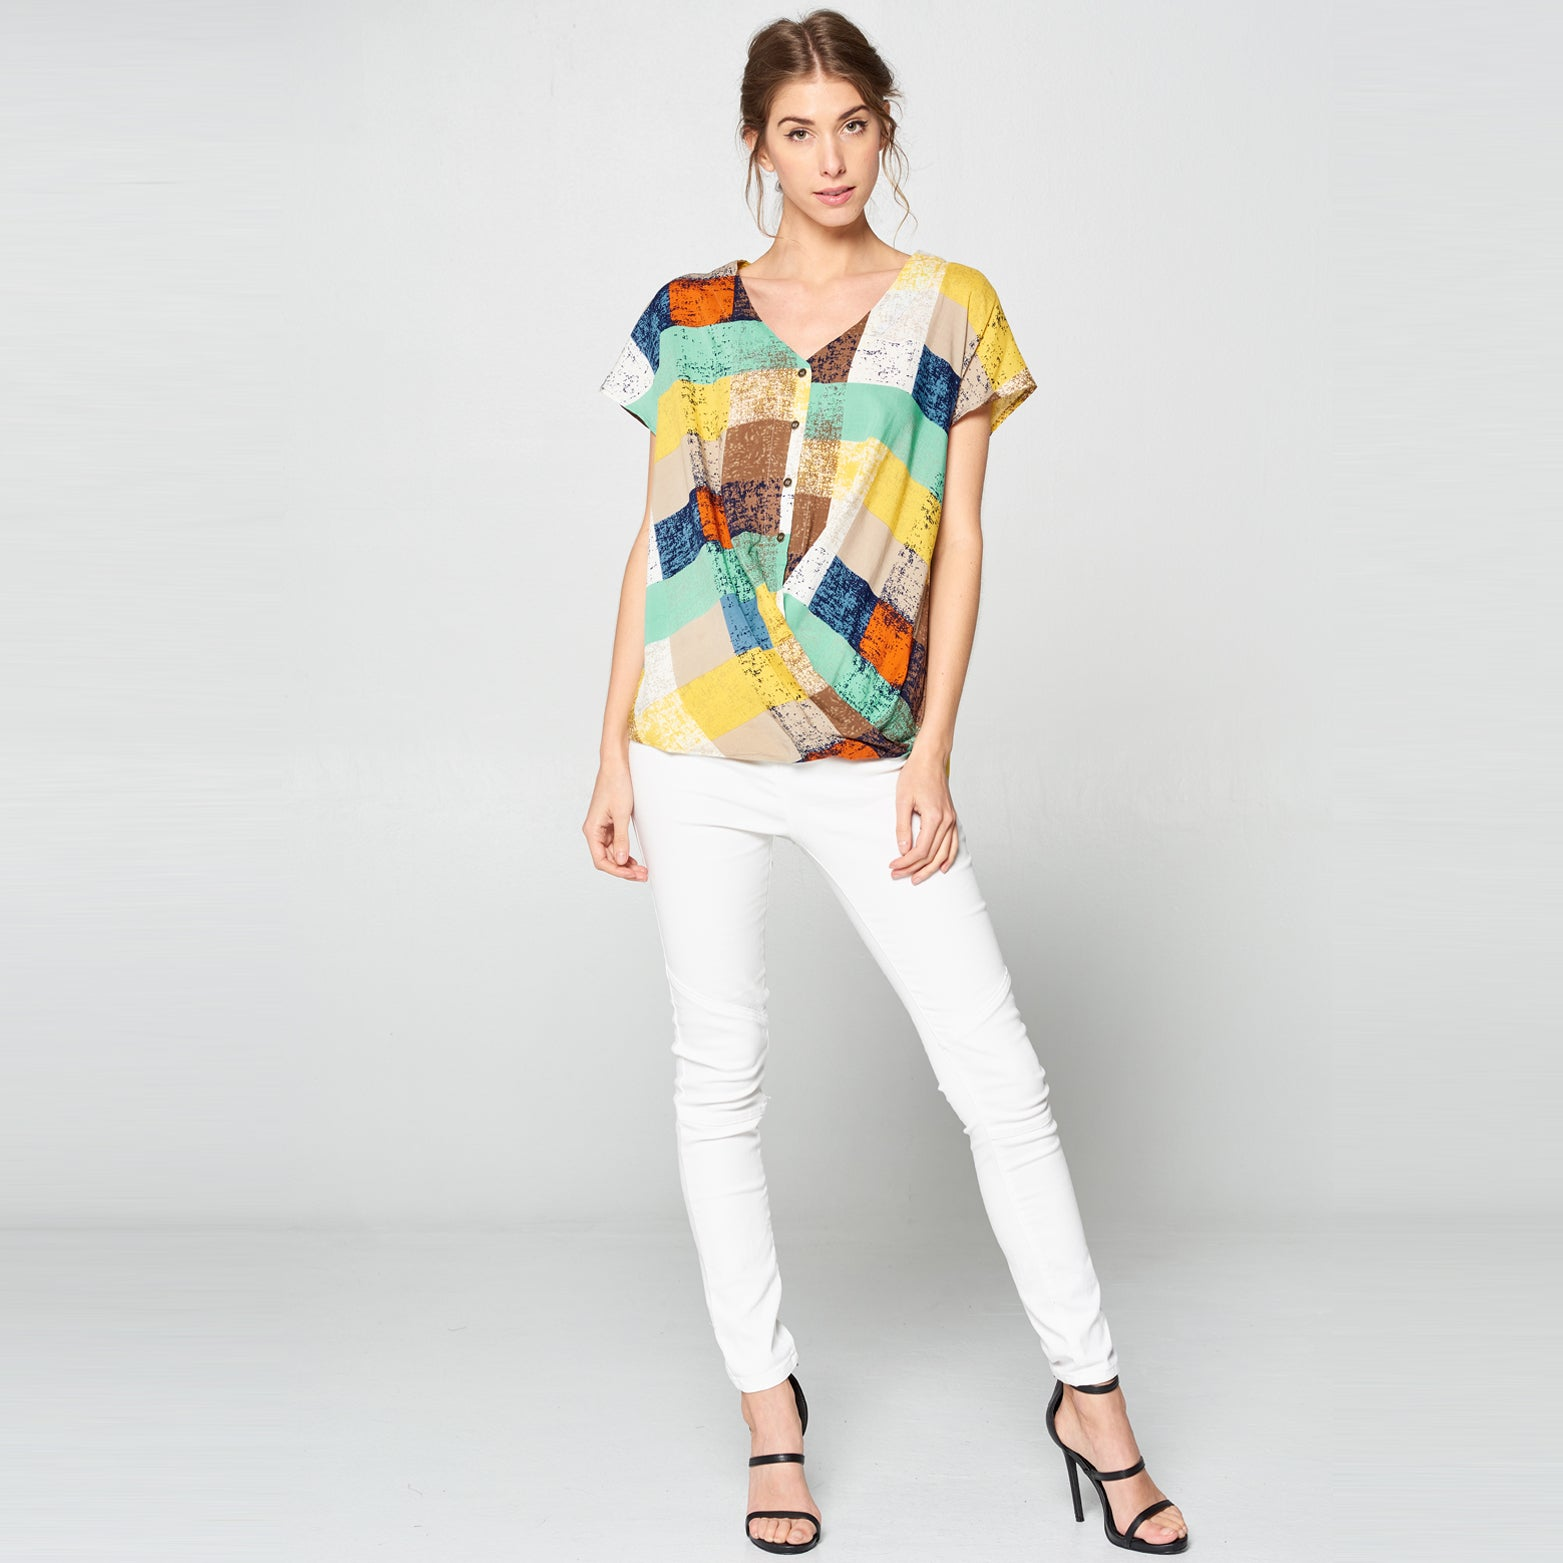 The ColorPatch Top